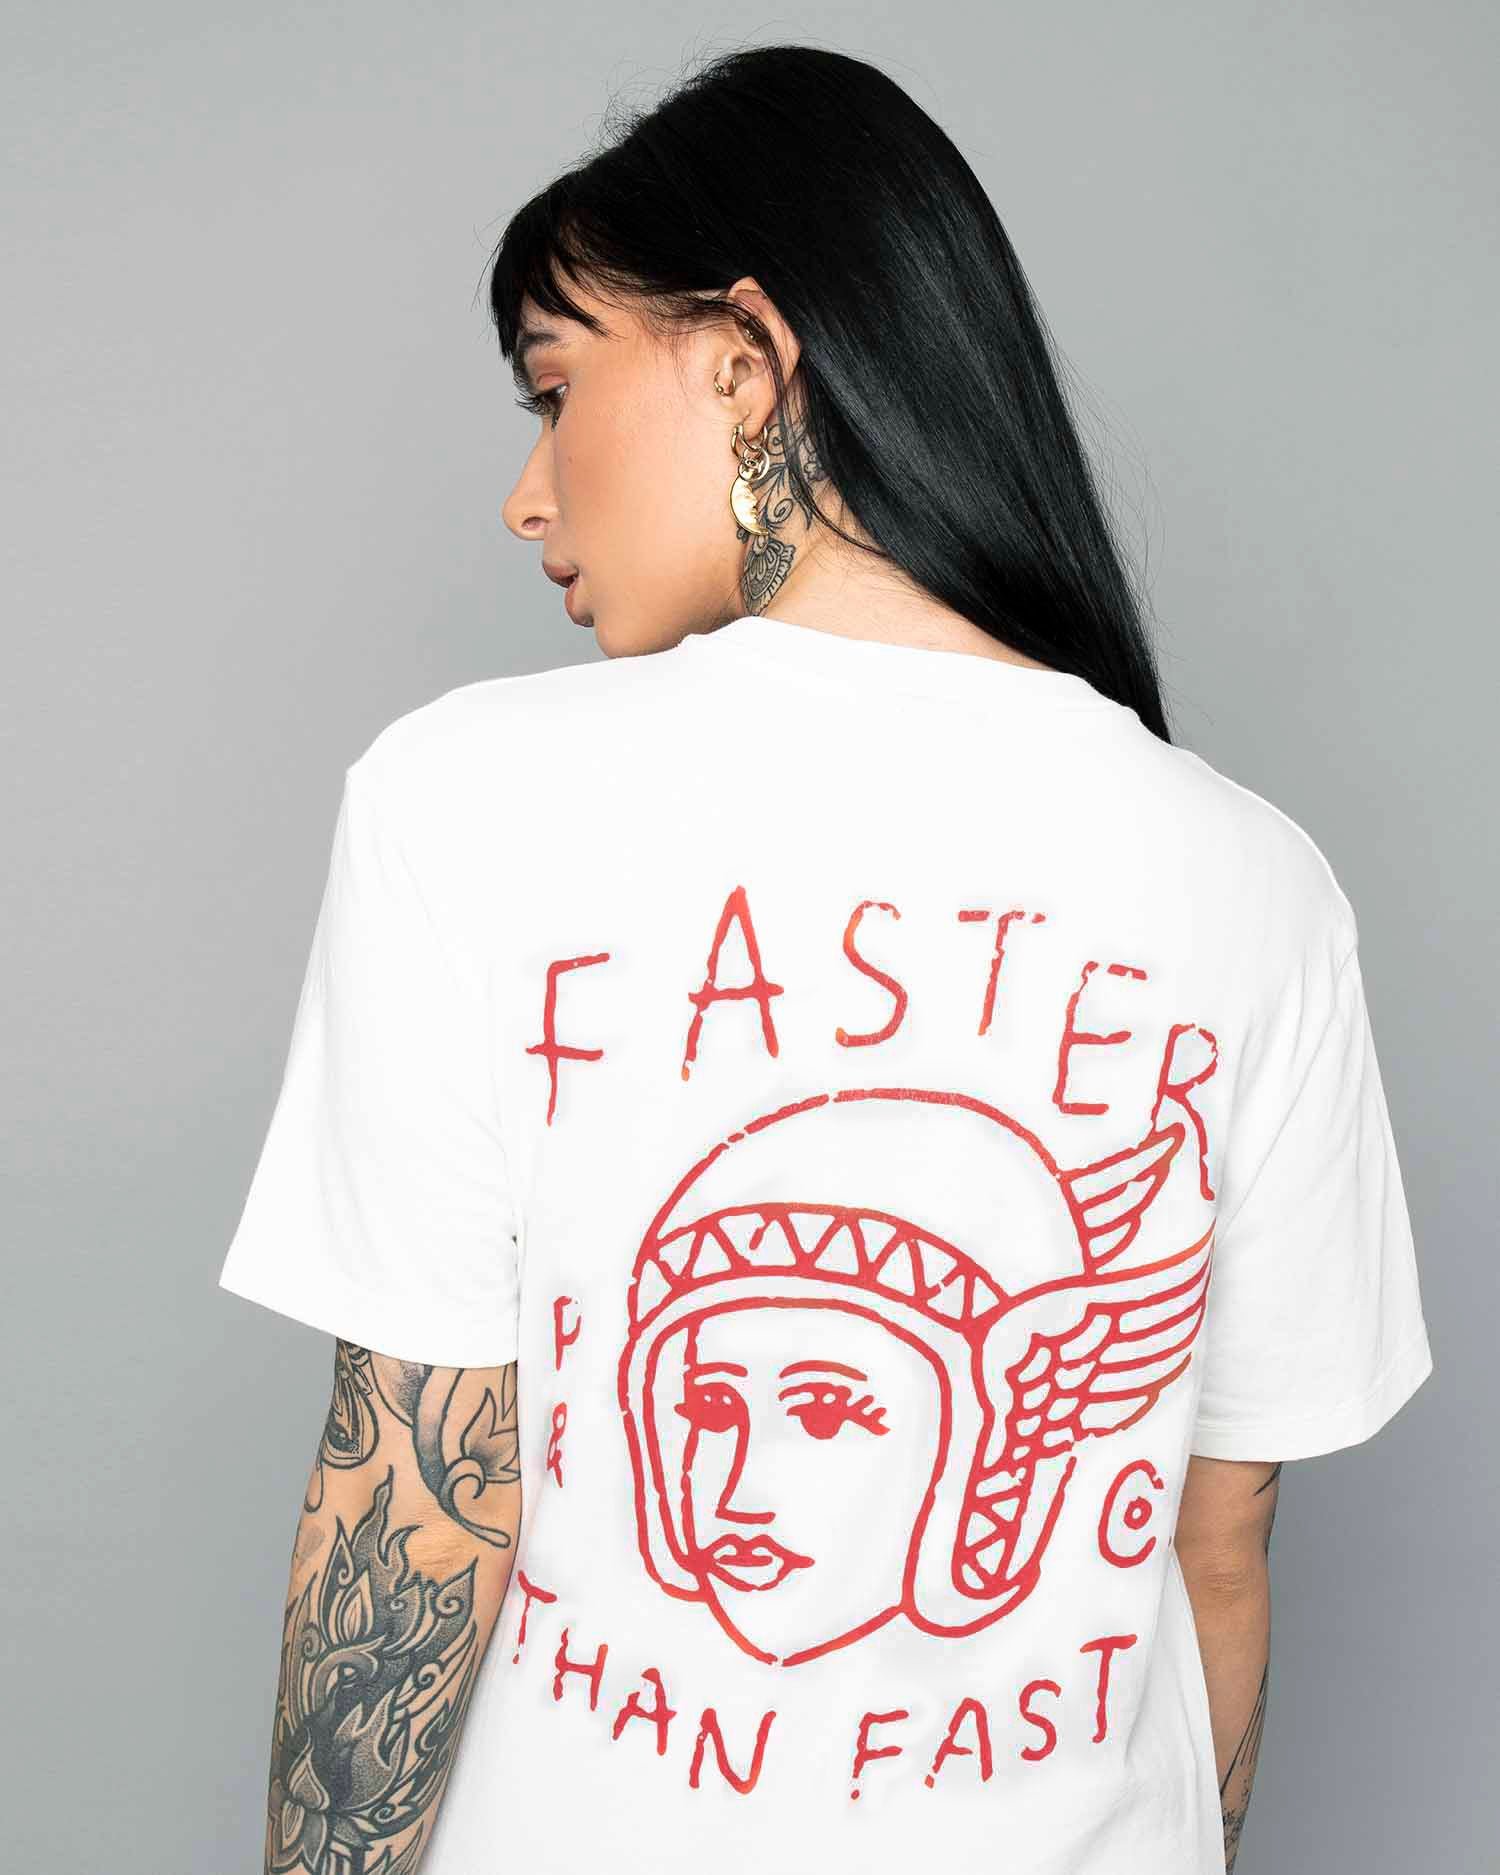 Faster than fast womens white tee